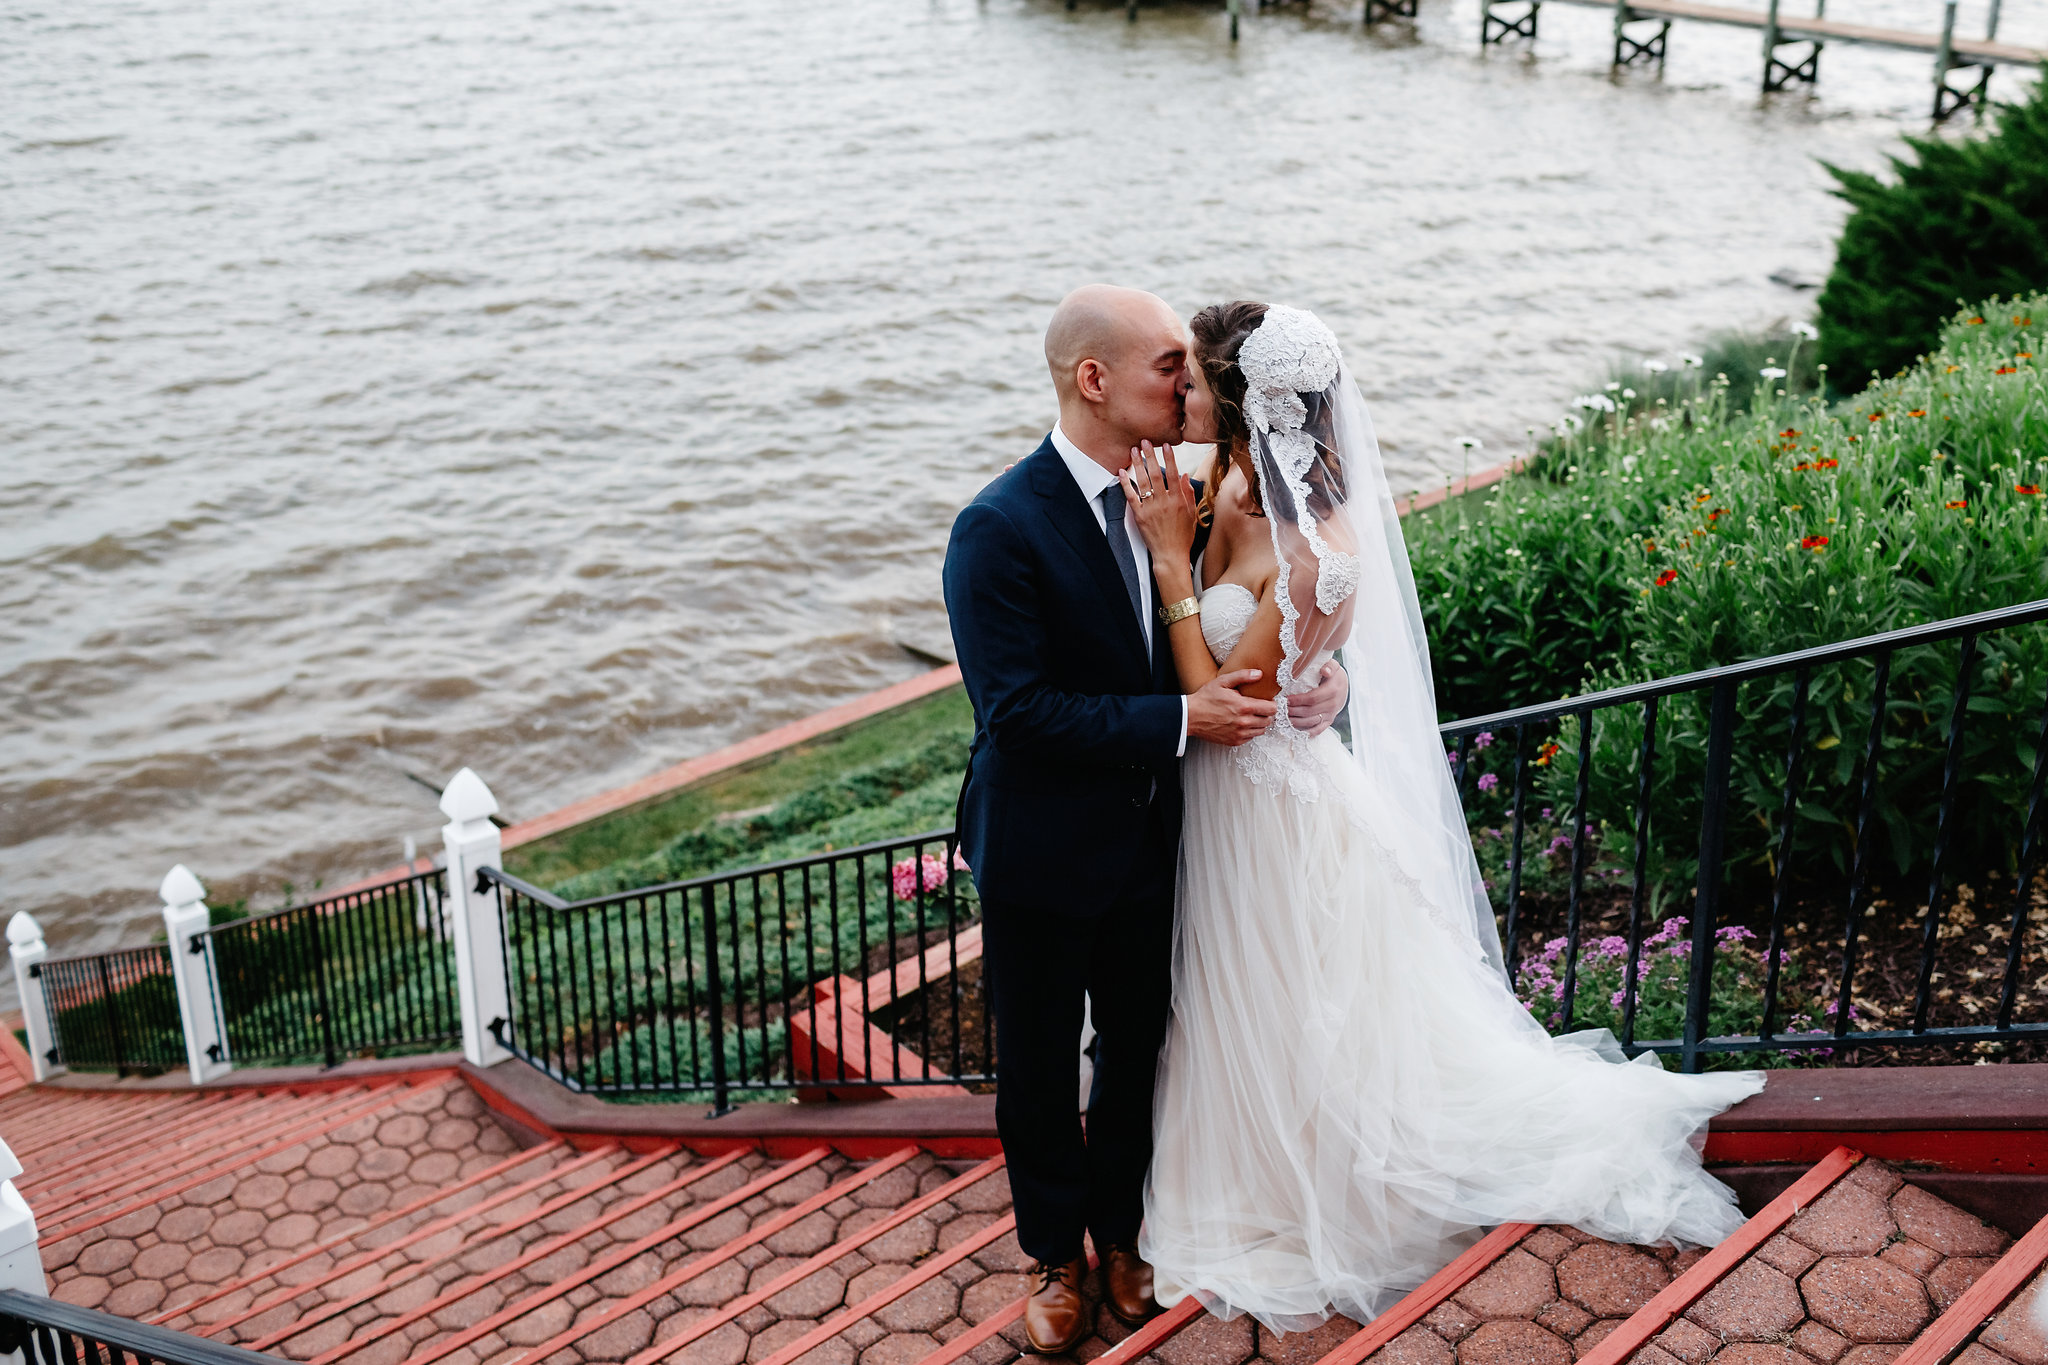 Maria&Dave2017-07-28at9.36.59AM105.jpg